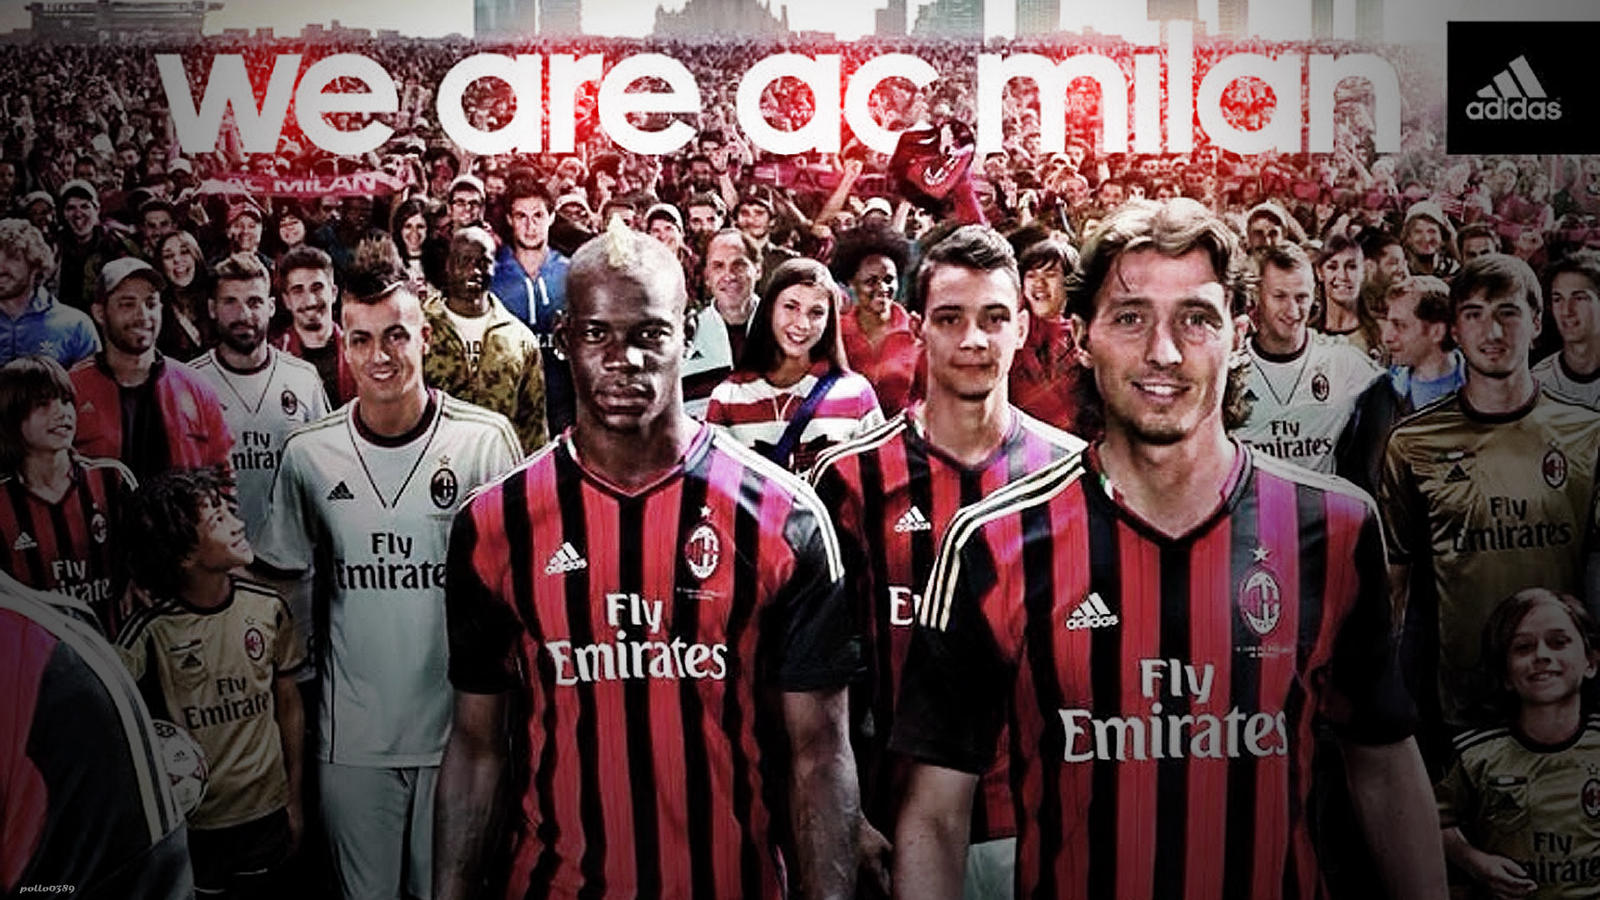 we_are_ac_milan_by_pollo0389-d6cq1jp.jpg